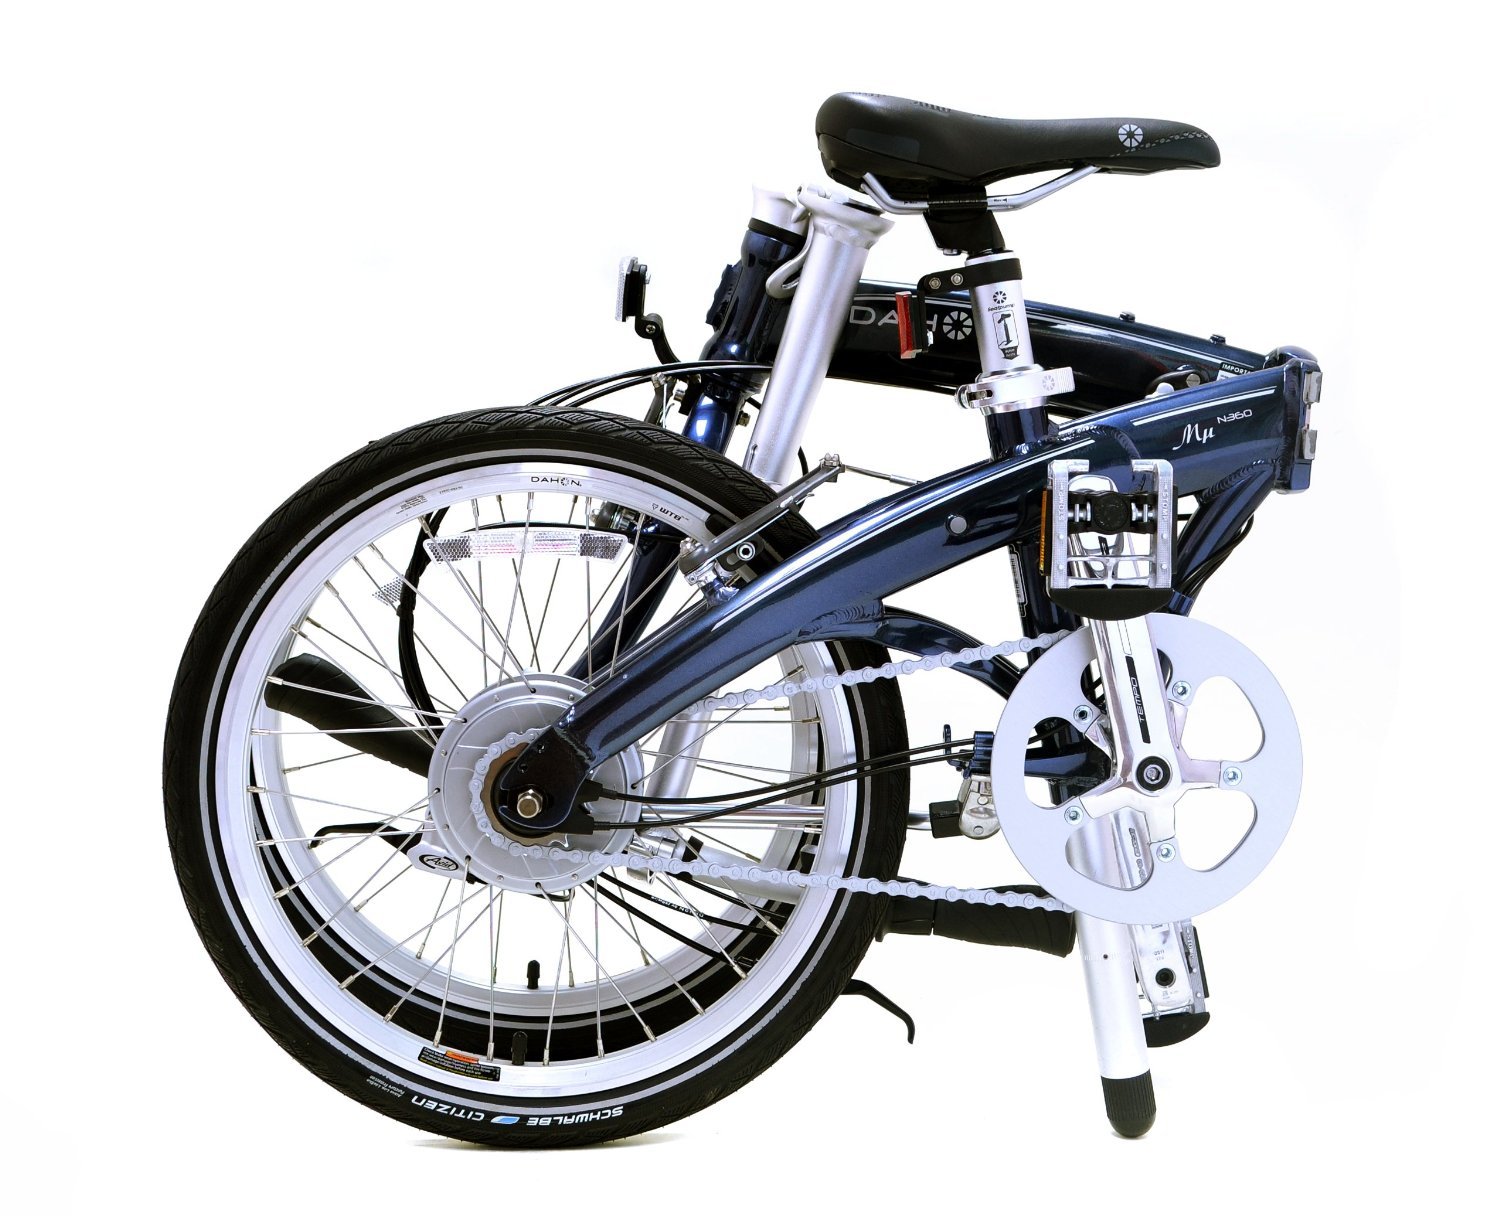 Dahon MU N-360 Folding Bike Review